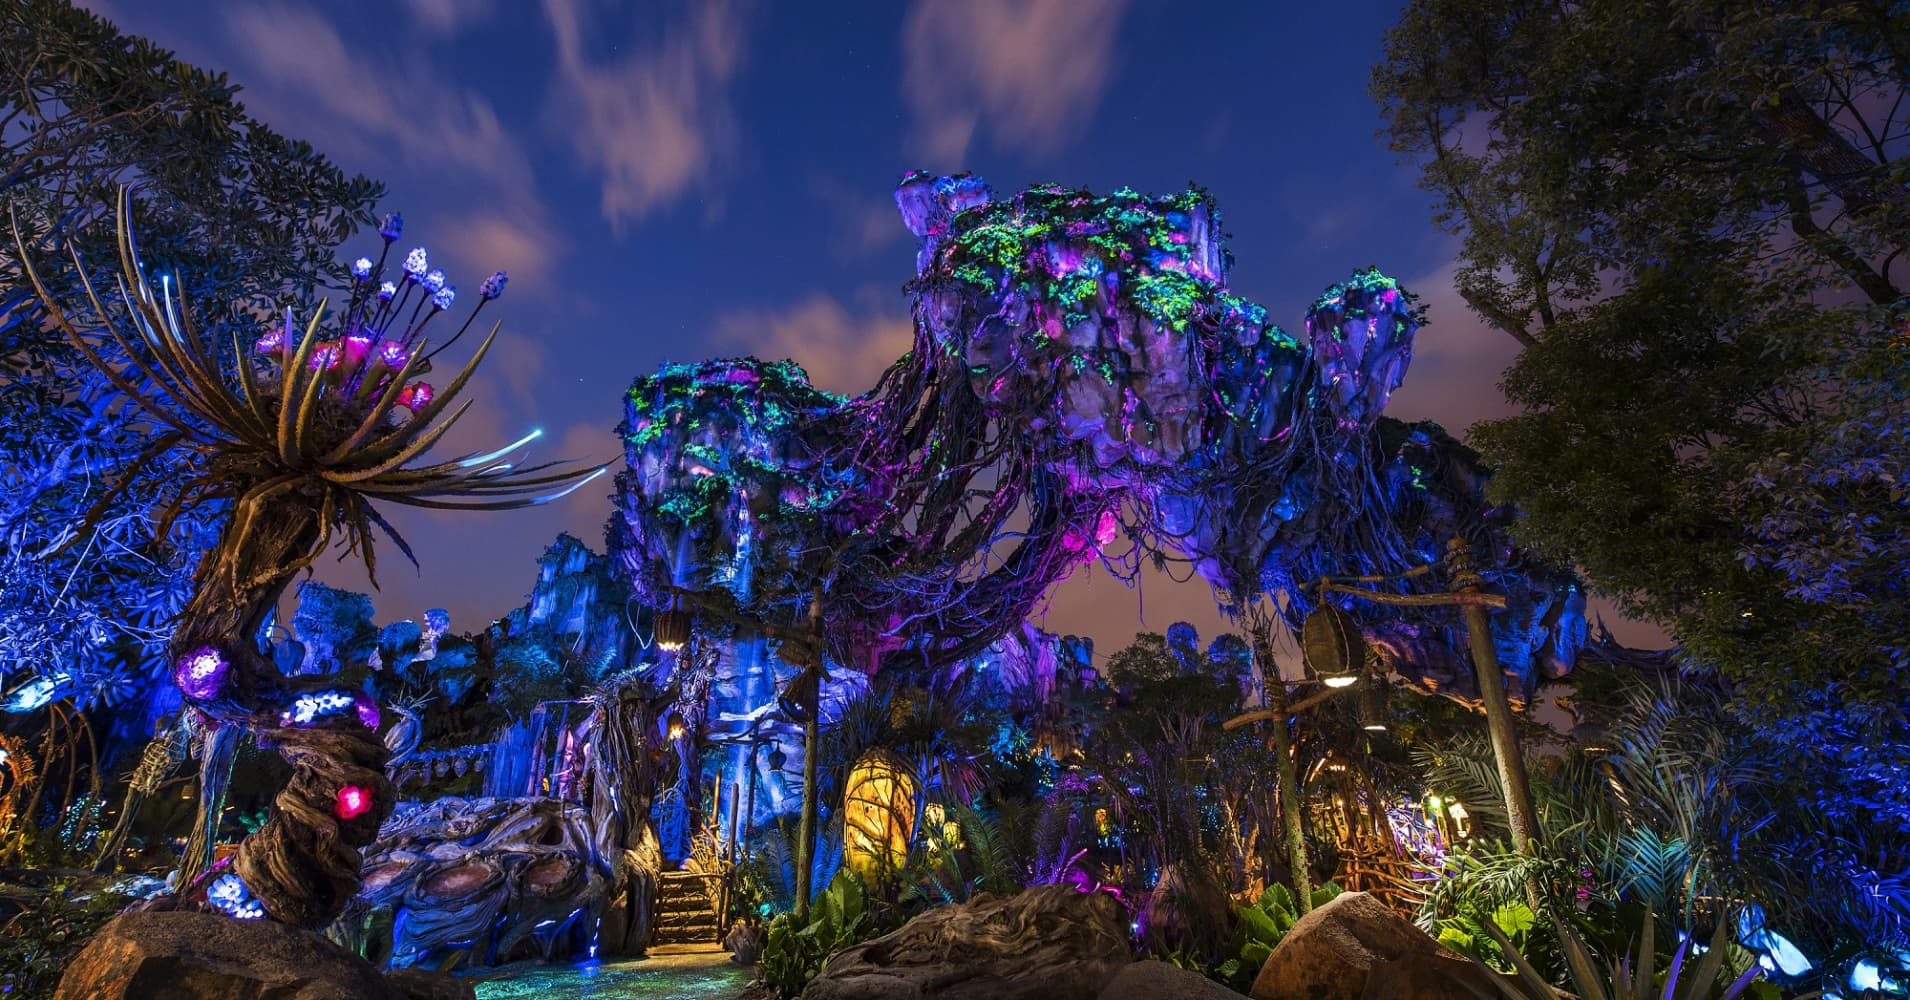 Pandora at Walt Disney World